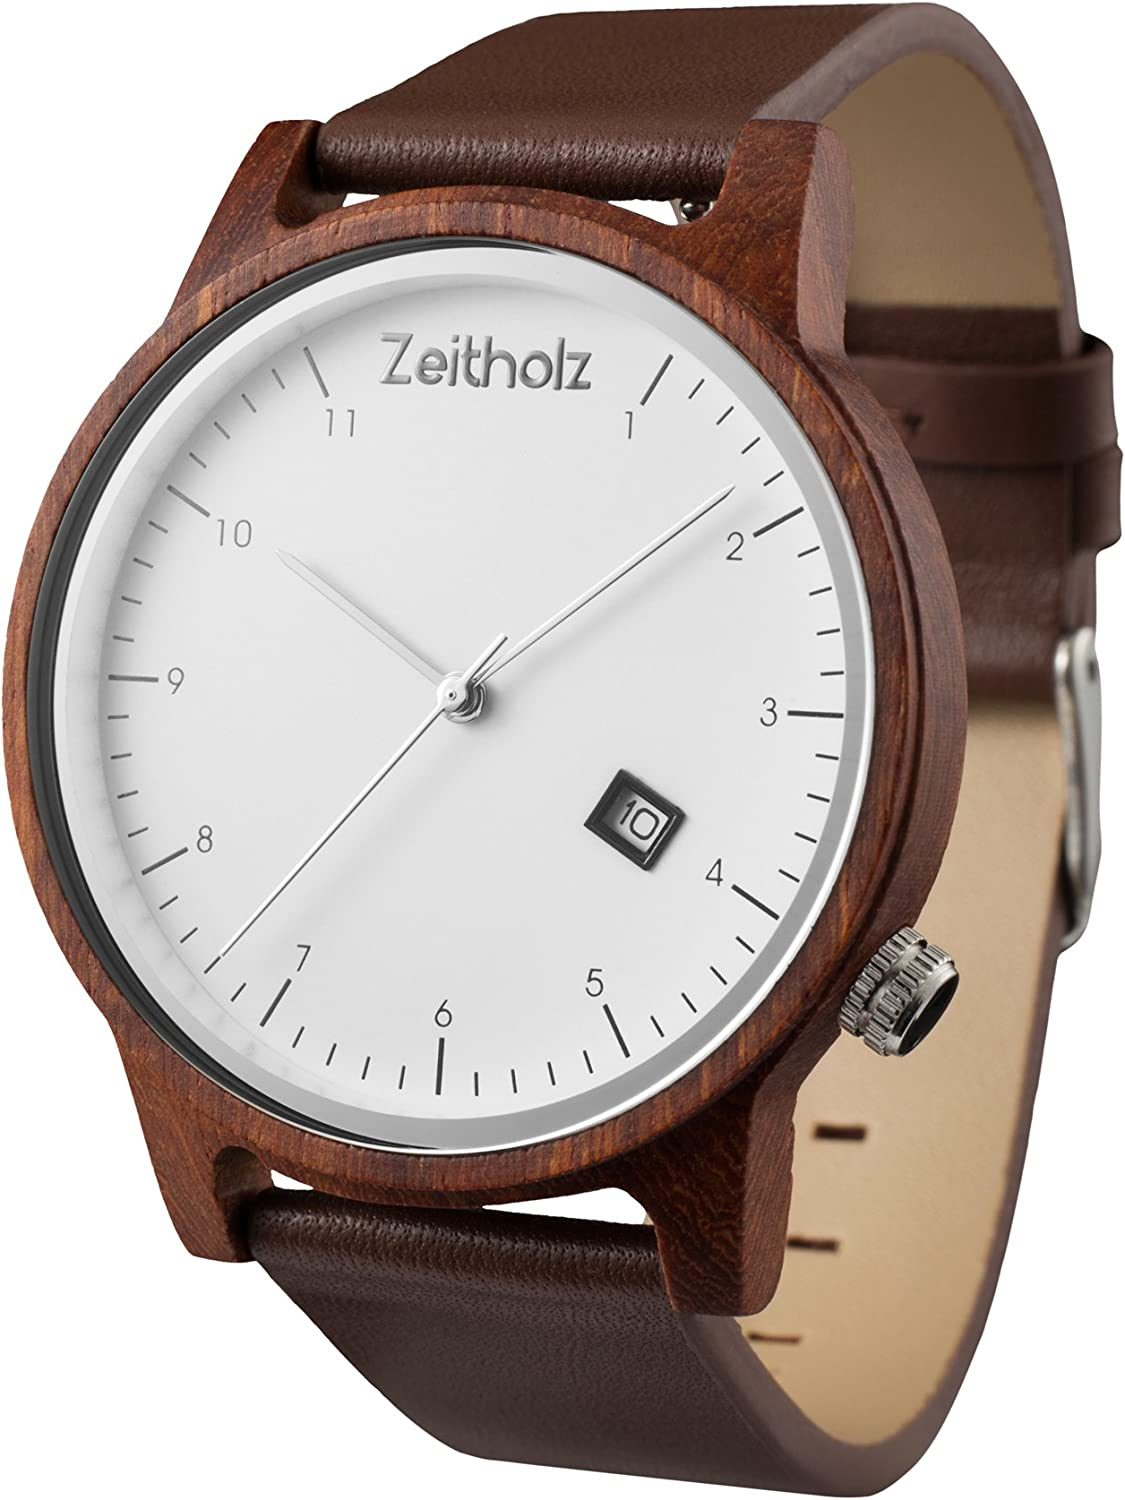 Zeitholz Wooden Watch for Men or Women, Breitenbrunn – 100 Natural Sandal, Maple or Zebrano Wood Case with Genuine Leather Straps – Lightweight Hypoallergenic Analog Quartz Wrist Watch with Gift Box